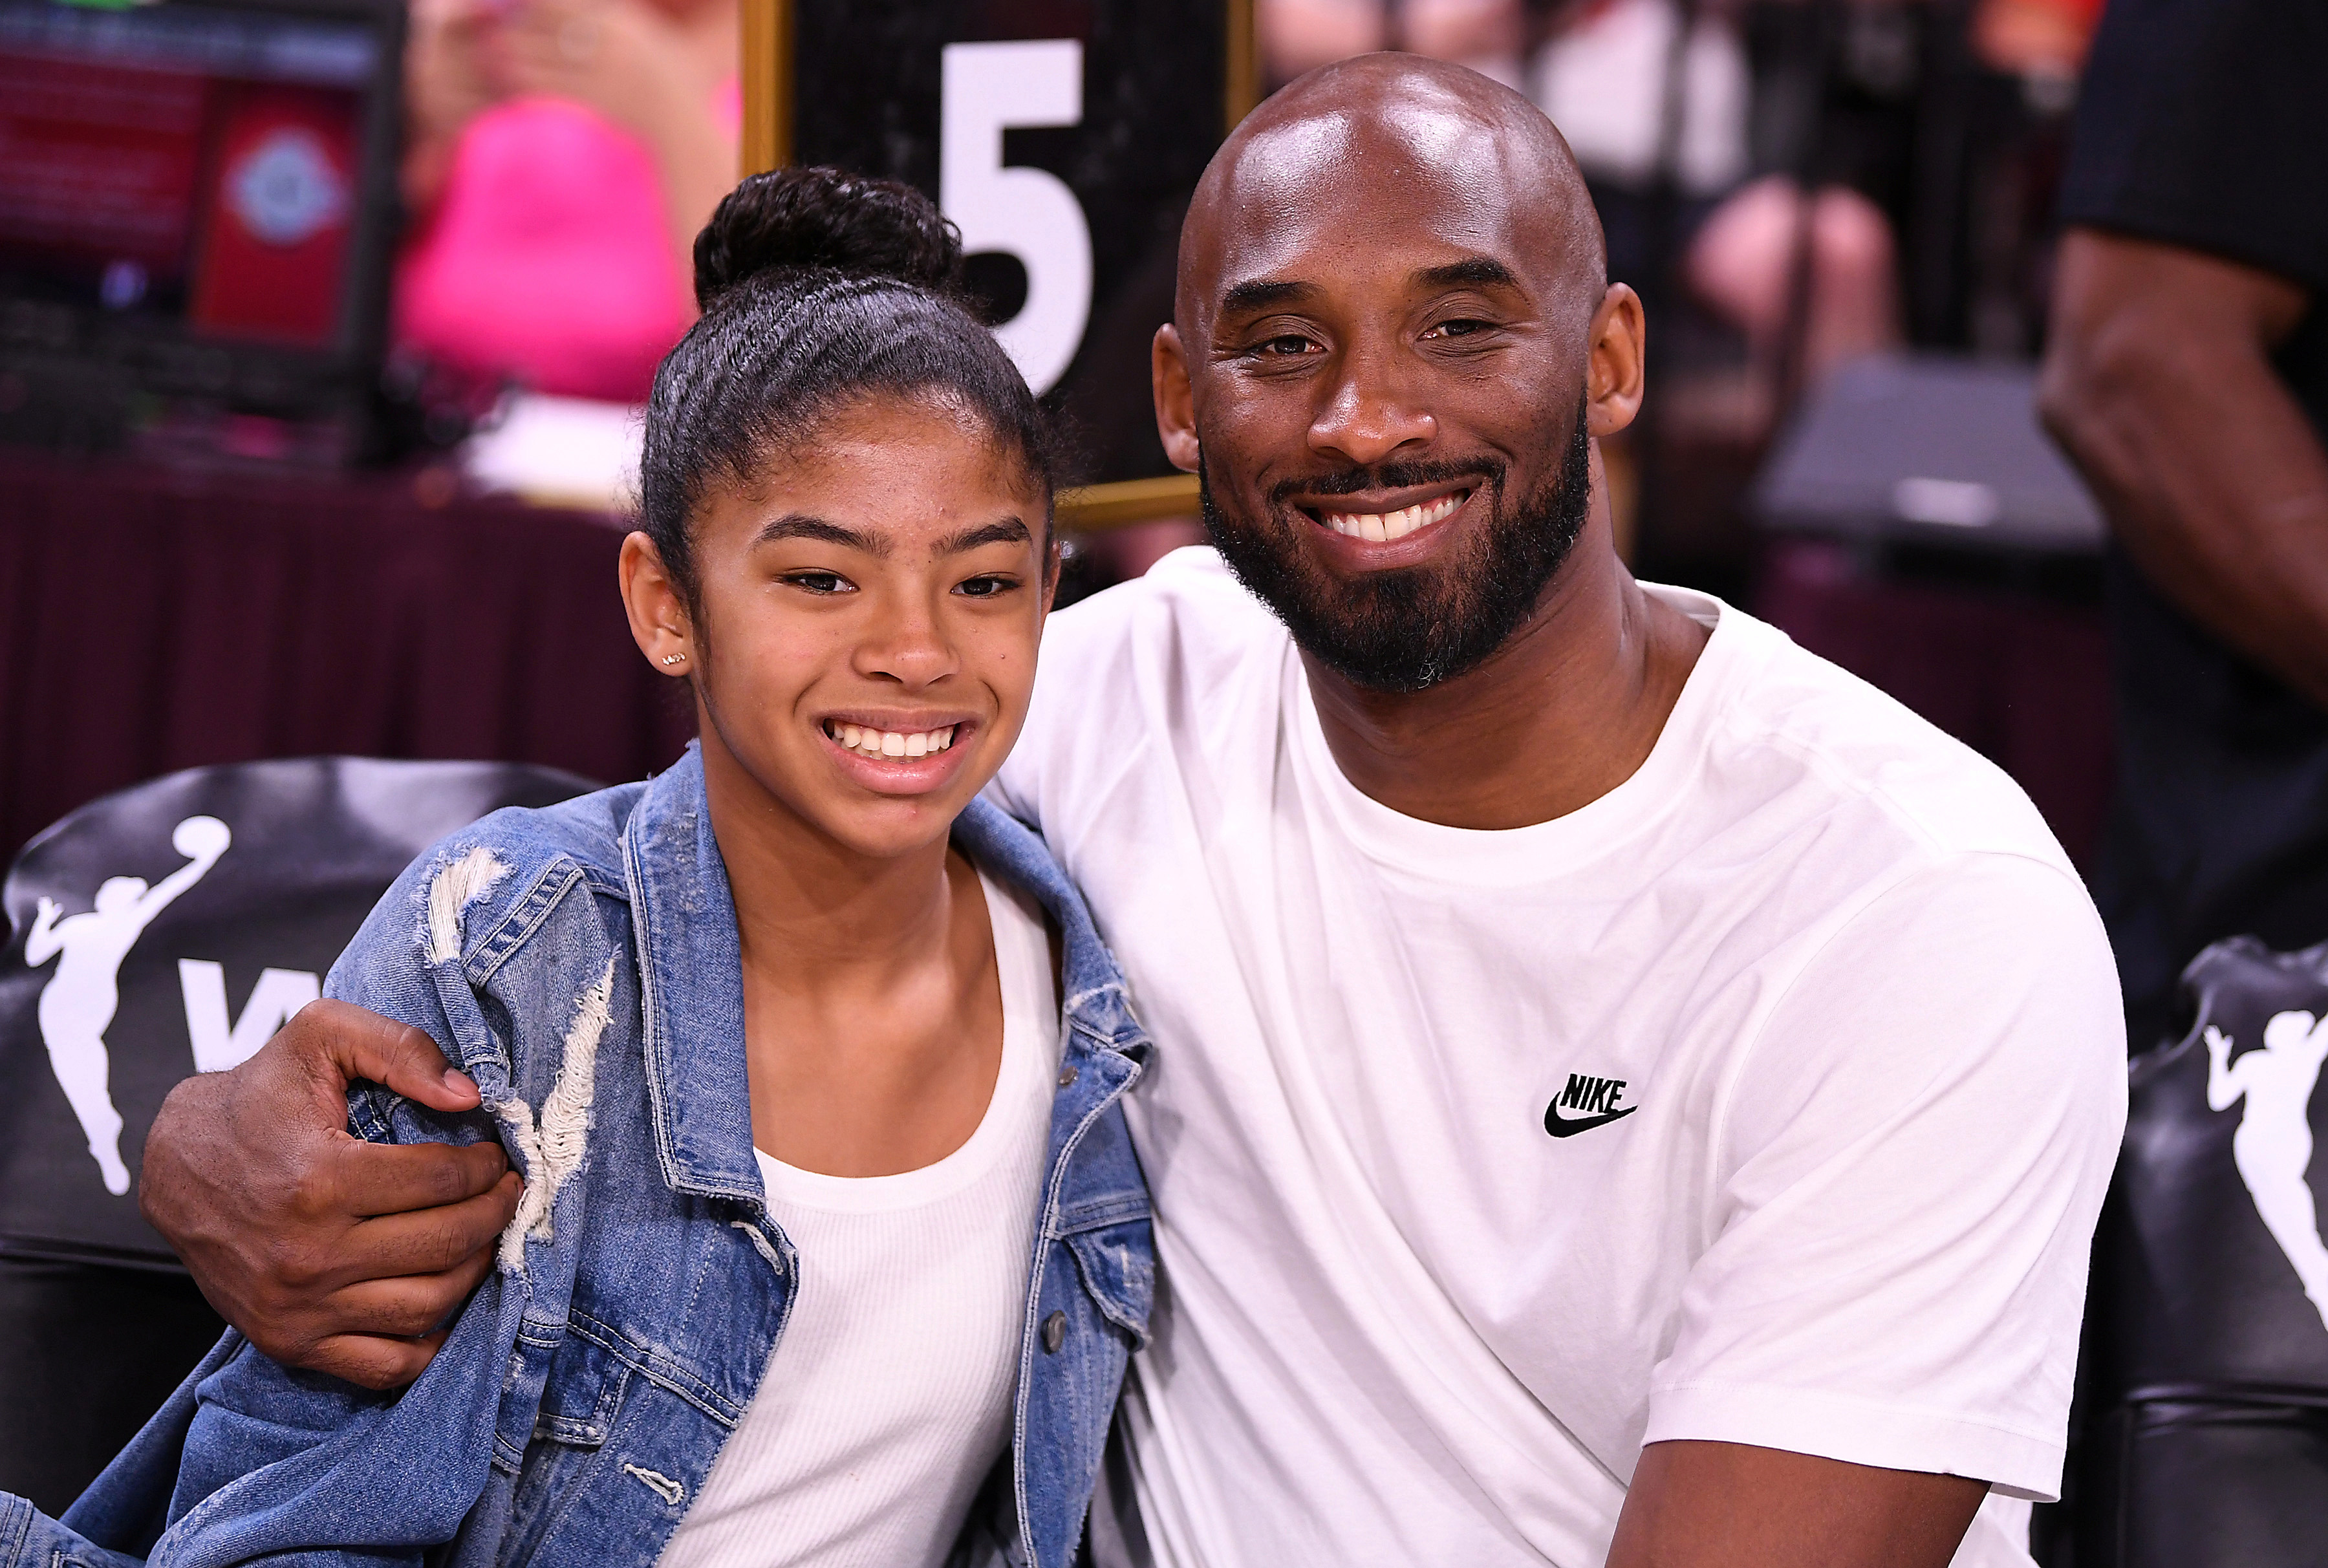 Kobe Bryant and his daughter Gianna, 13, were among the nine killed in a crash yesterday